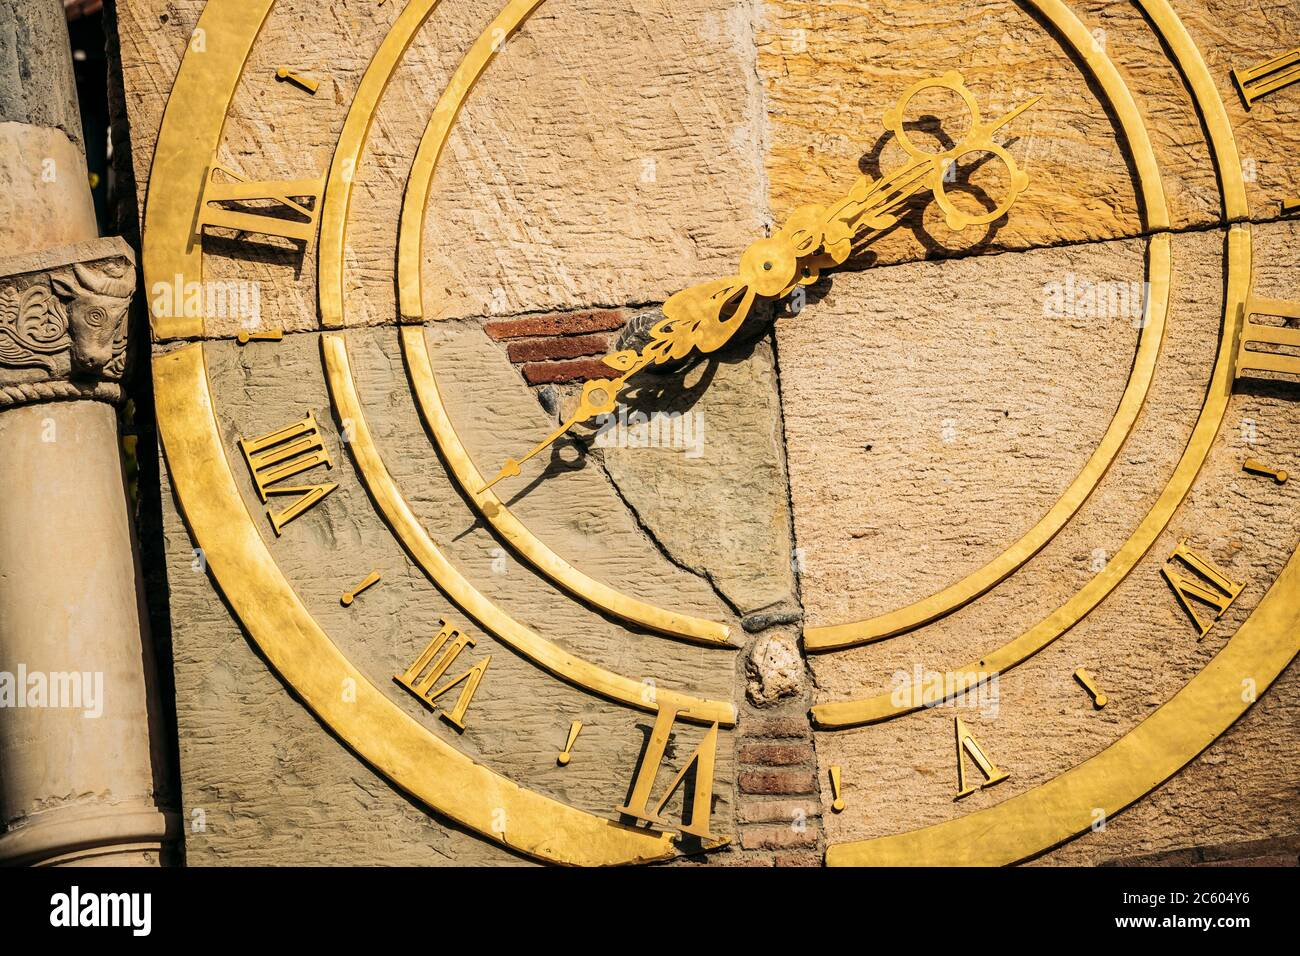 Tbilisi, Georgia. Close Up Details Of Famous Rezo Gabriadze Marionette Theater Clock Tower On Old City. Puppet Theater Museum In Tbilisi, Georgia, Stock Photo